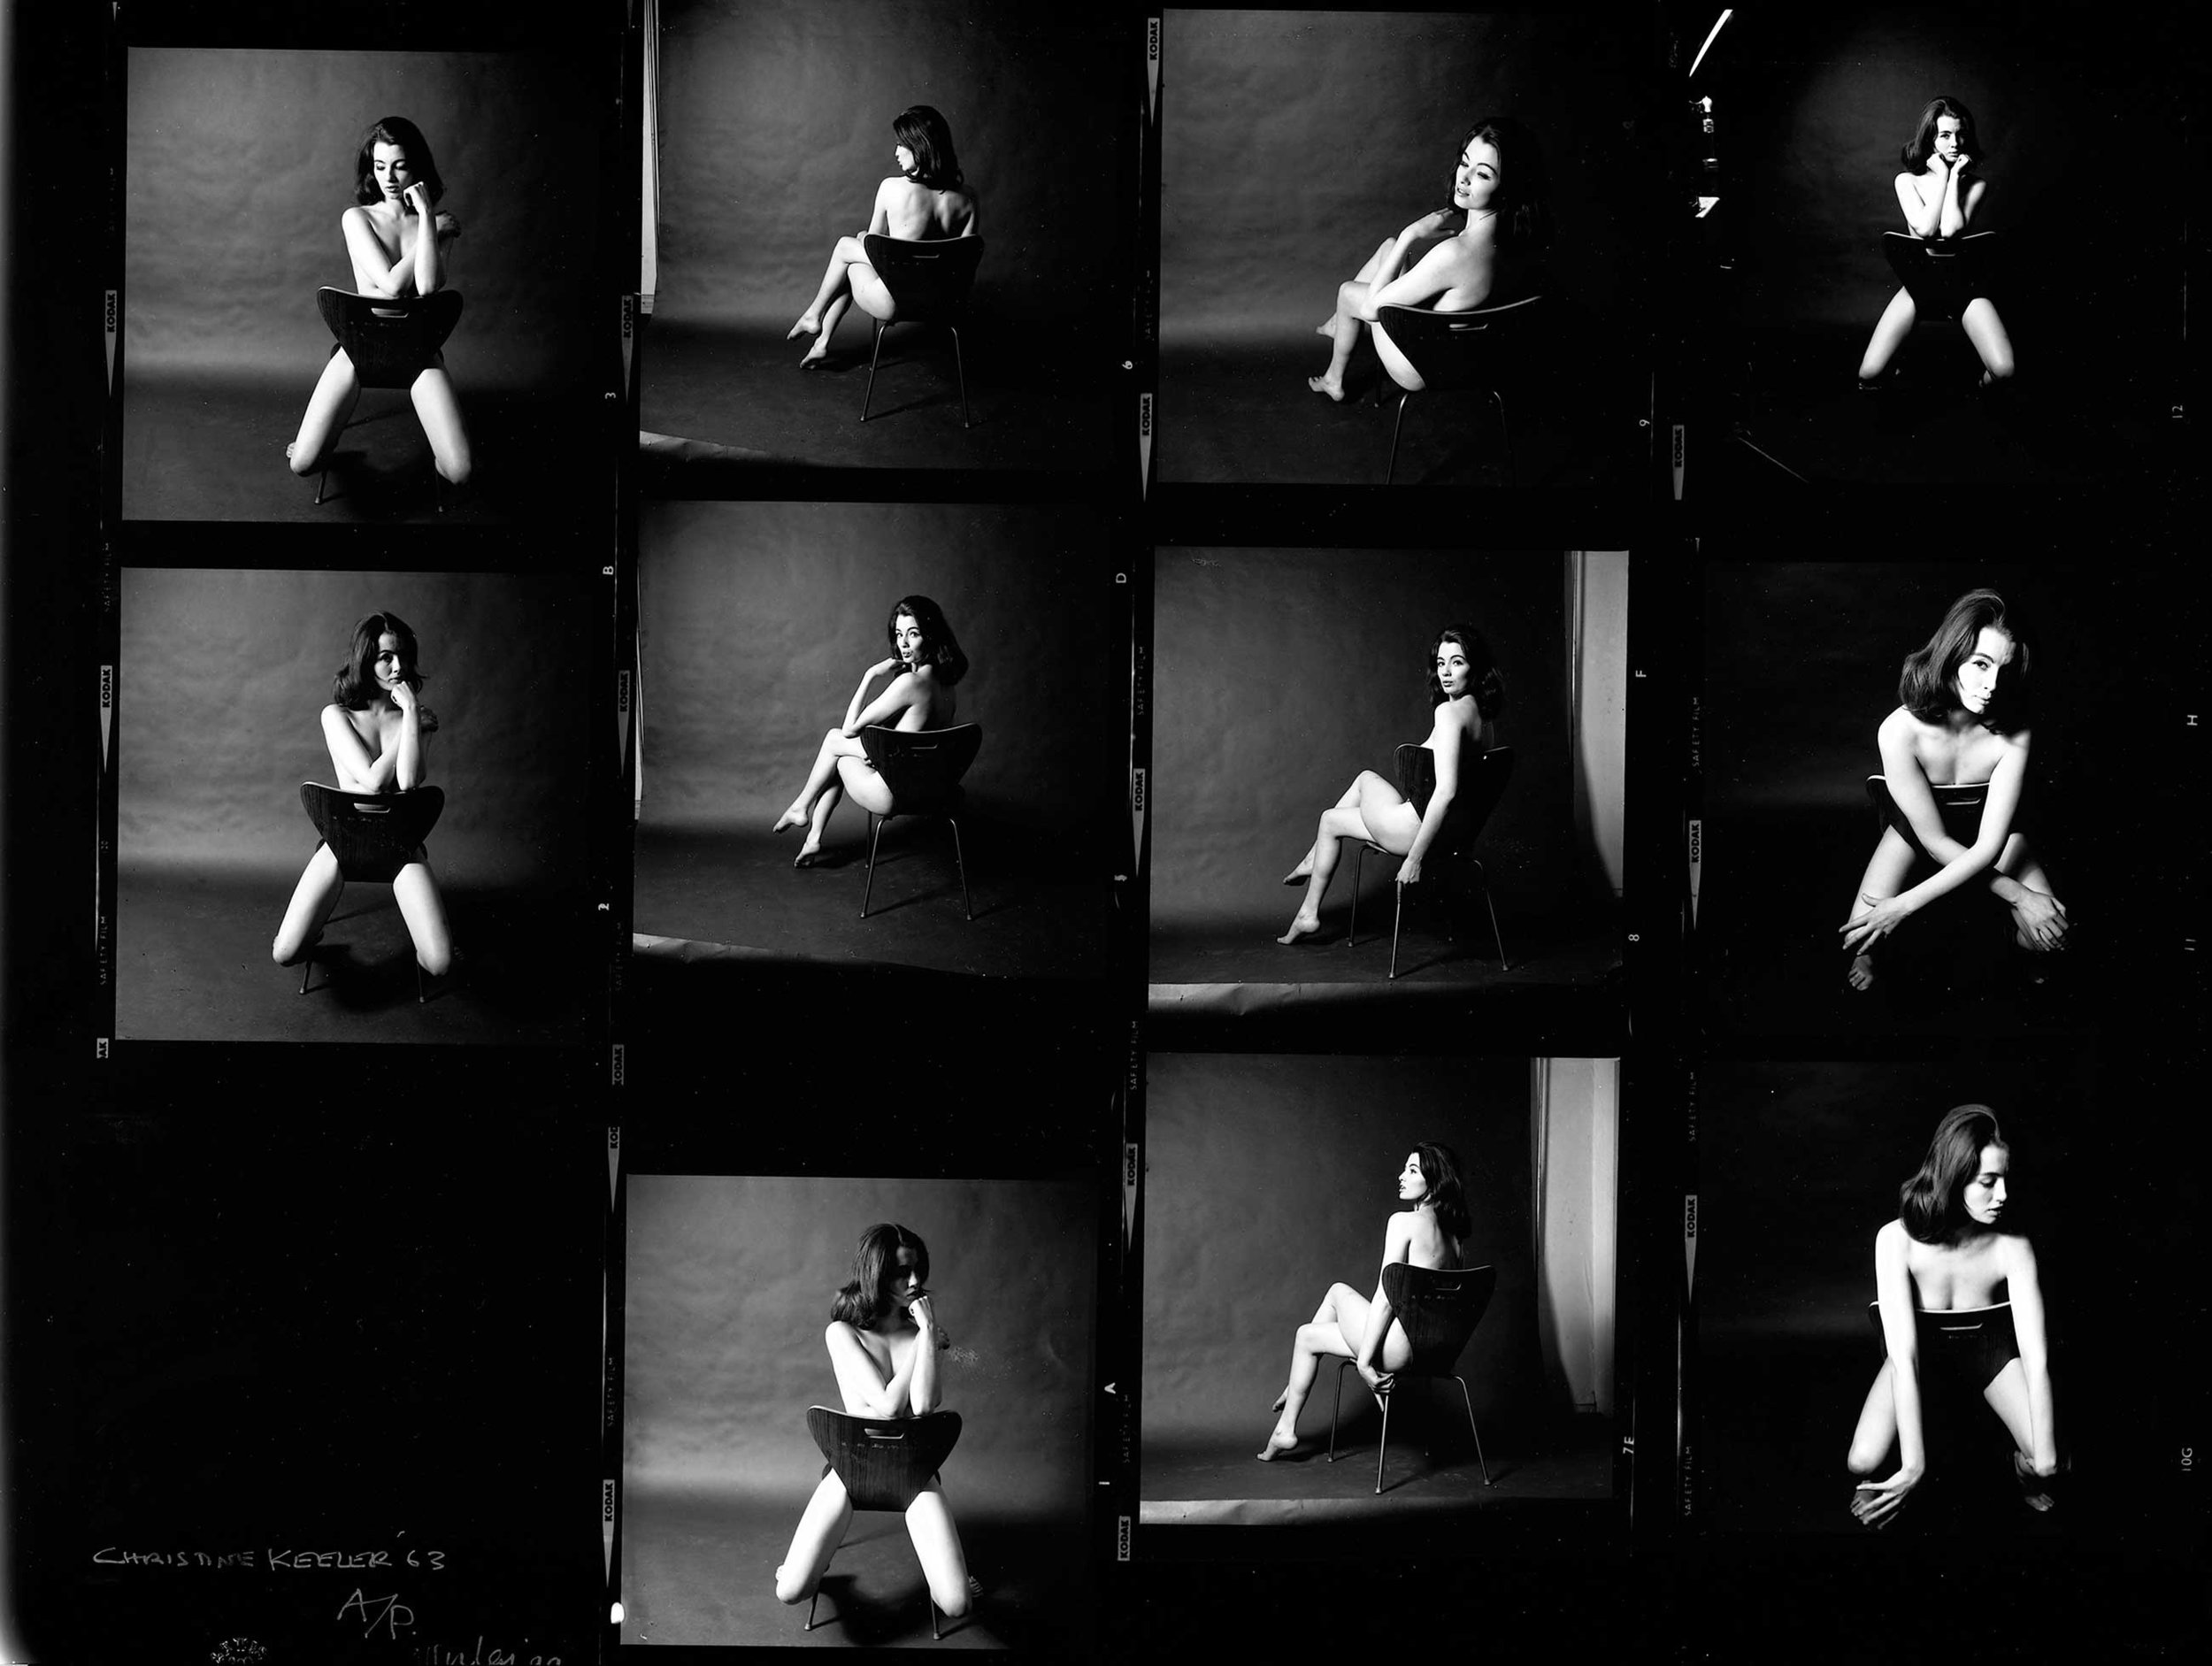 Christine Keeler, photographs by Lewis Morley © Lewis Morley National Media Museum Science & Society Picture Library